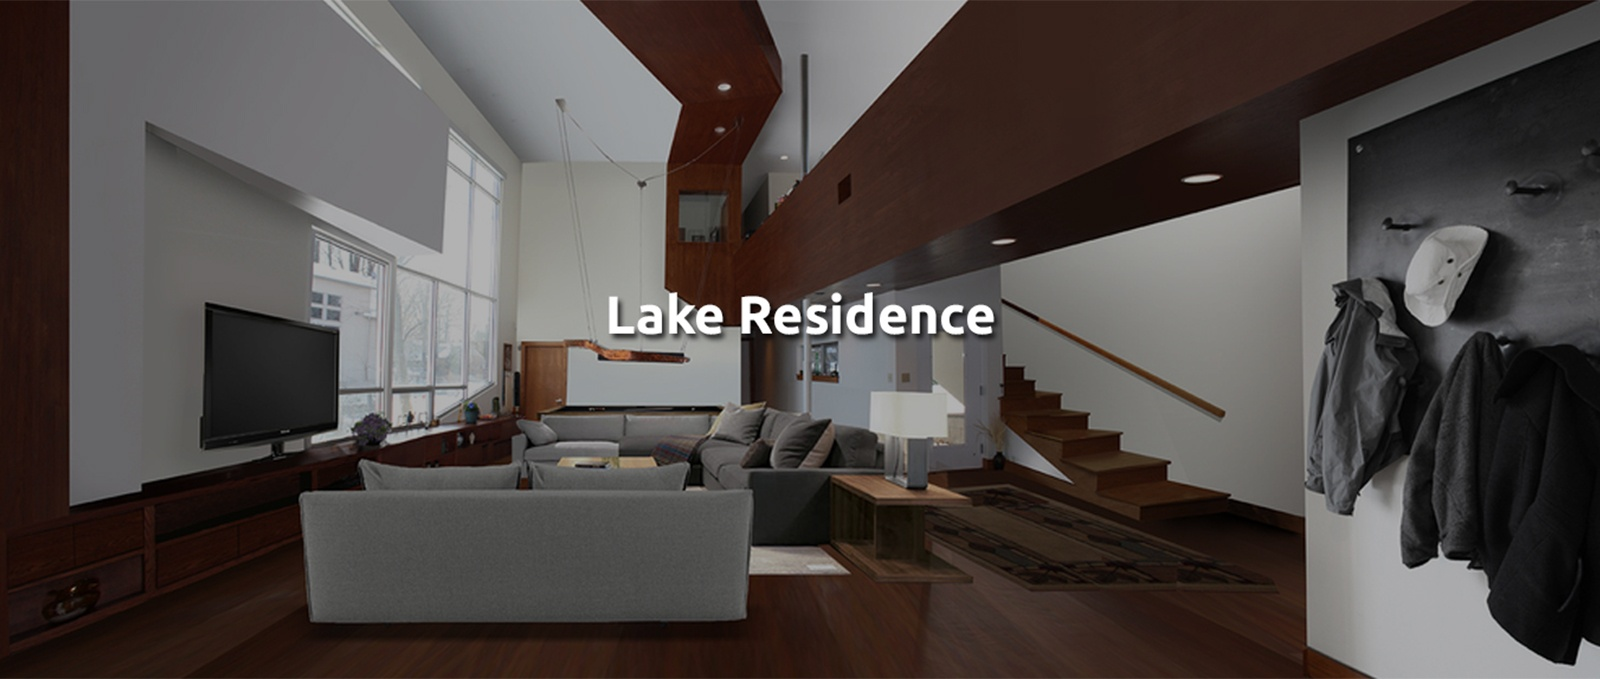 Lake Residence - Architectural Design Plans Cleveland by redhouse studio